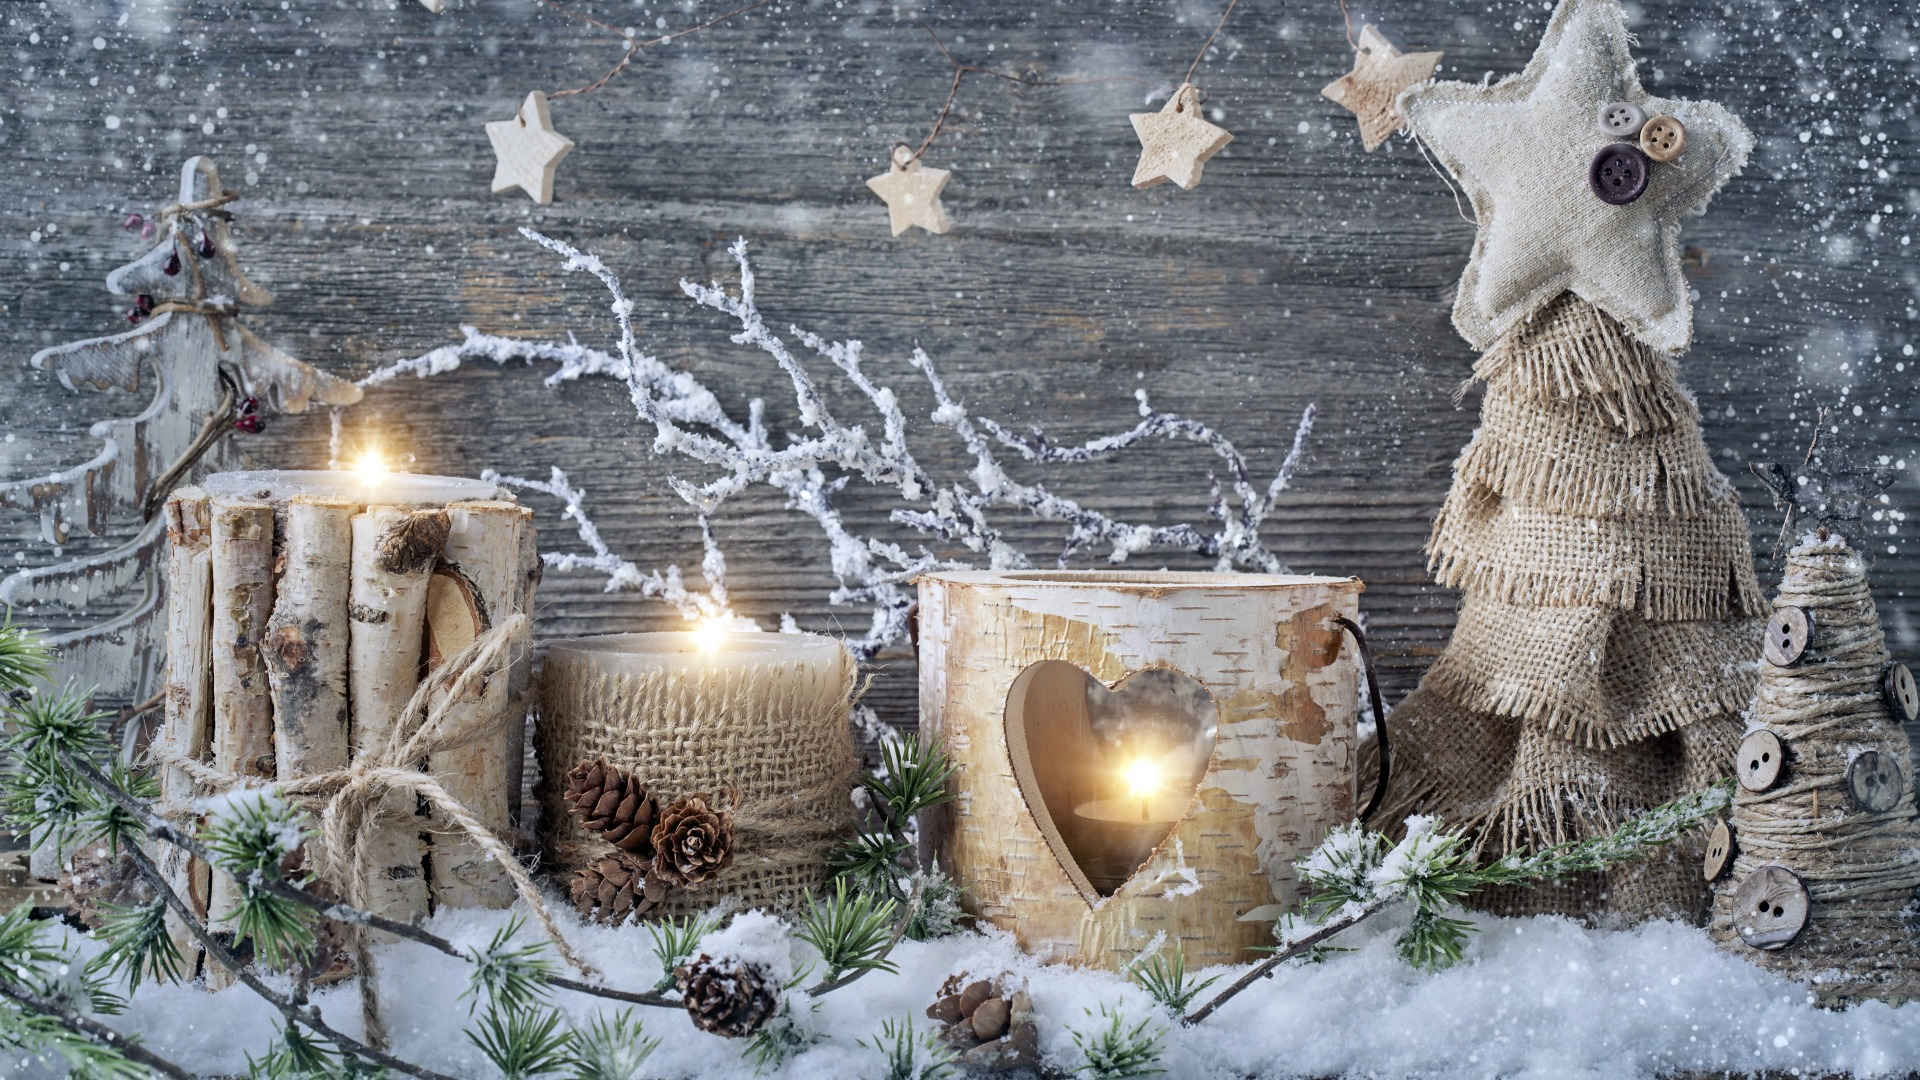 Download-snow-decoration-candles-New-Year-Christmas-Christmas-vintage-New-Year-dec-wallpaper-wp3804823